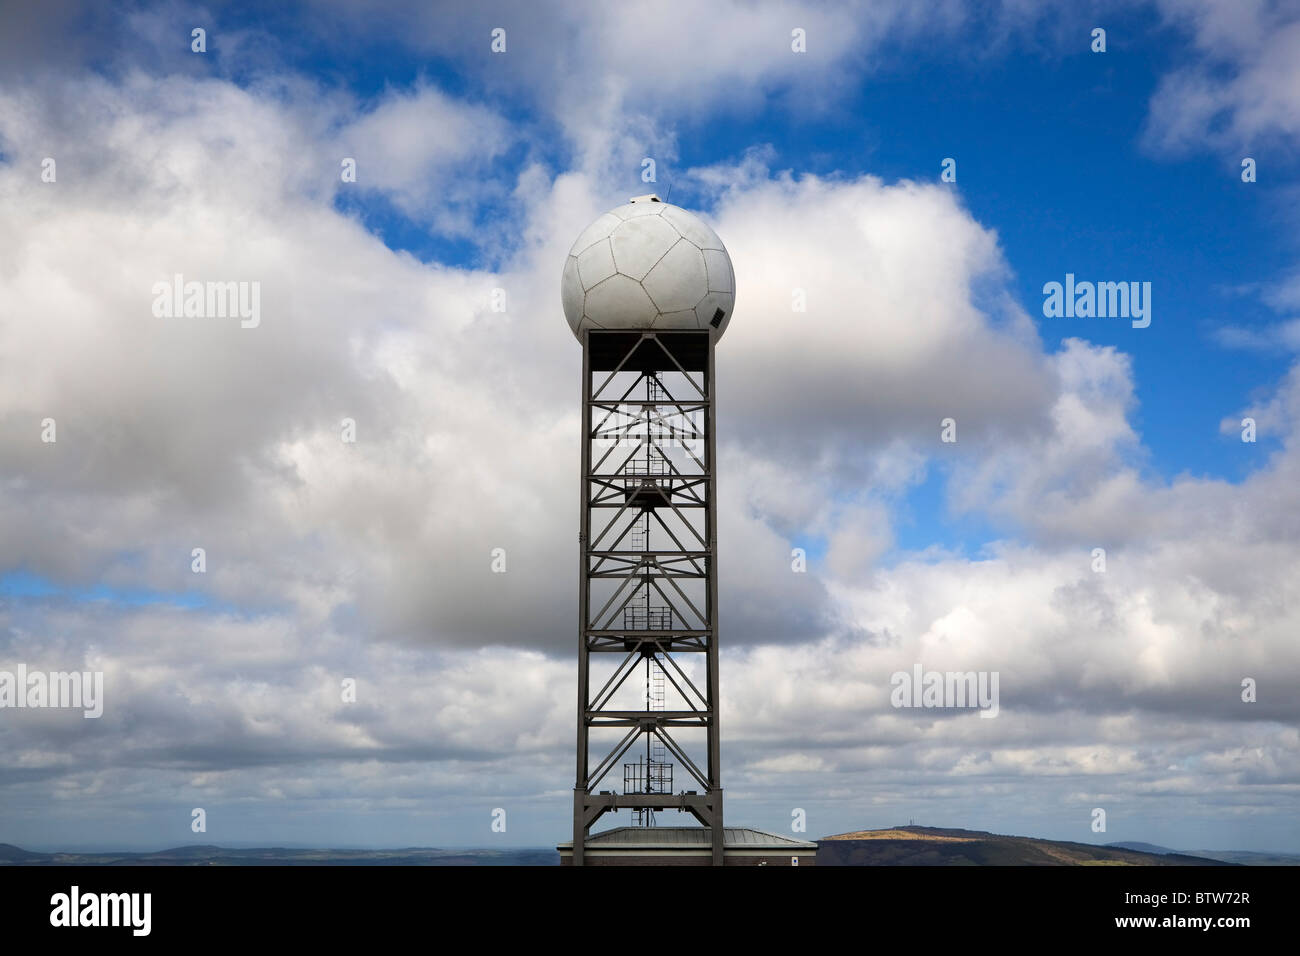 Air Traffic Control Dome, Titterstone Clee Hill, Shropshire, United Kingdom - Stock Image